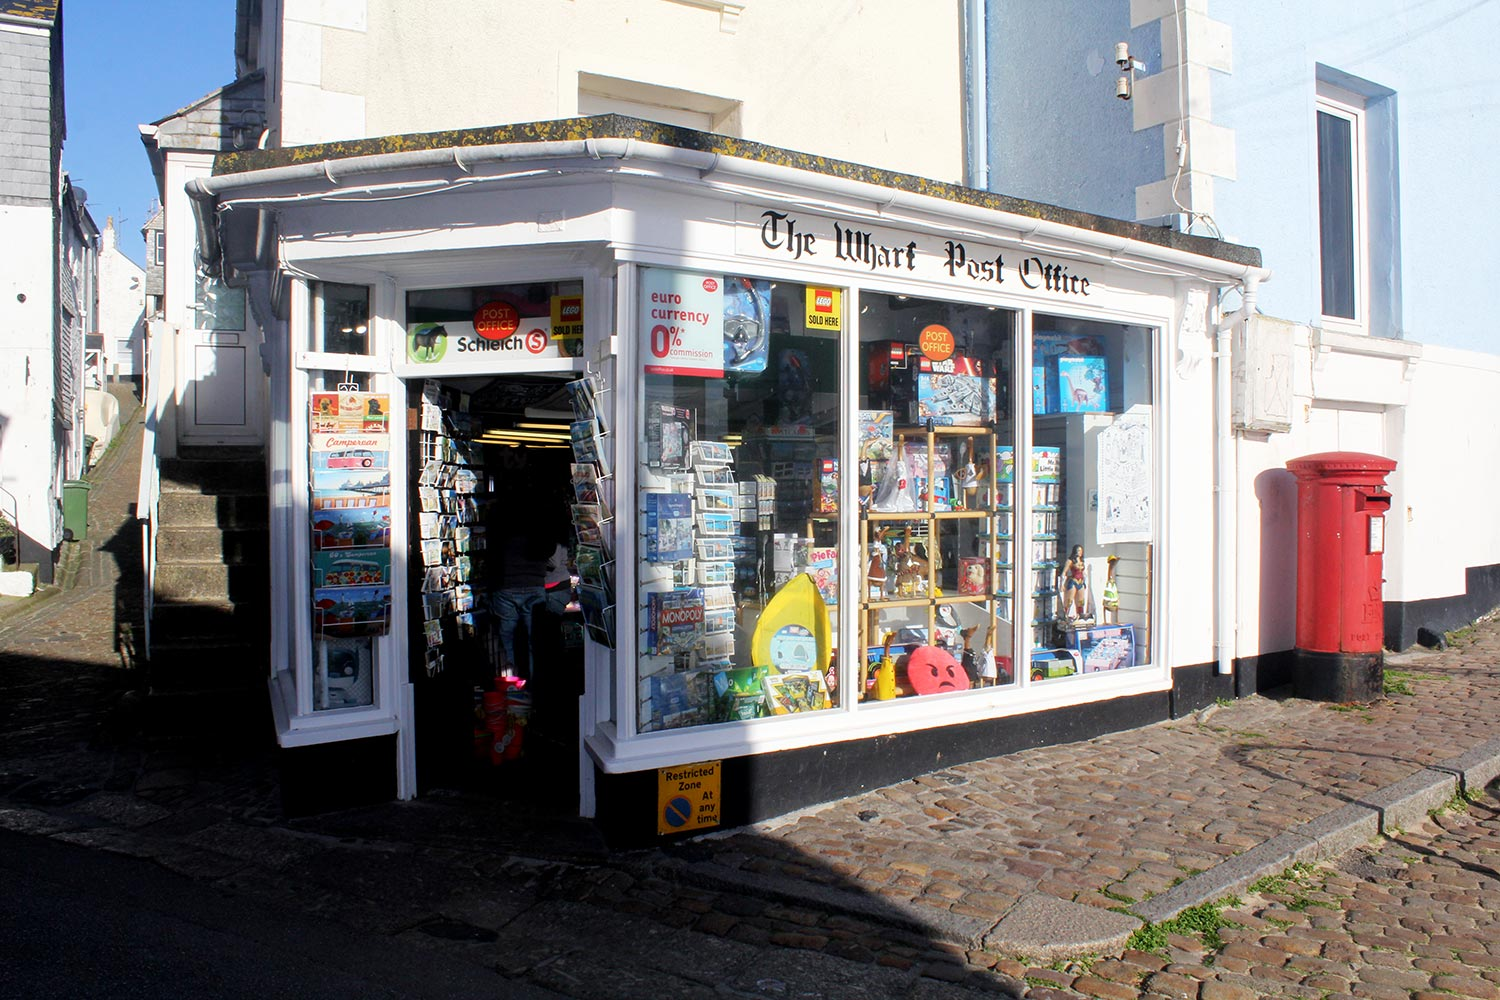 The Wharf Post Office